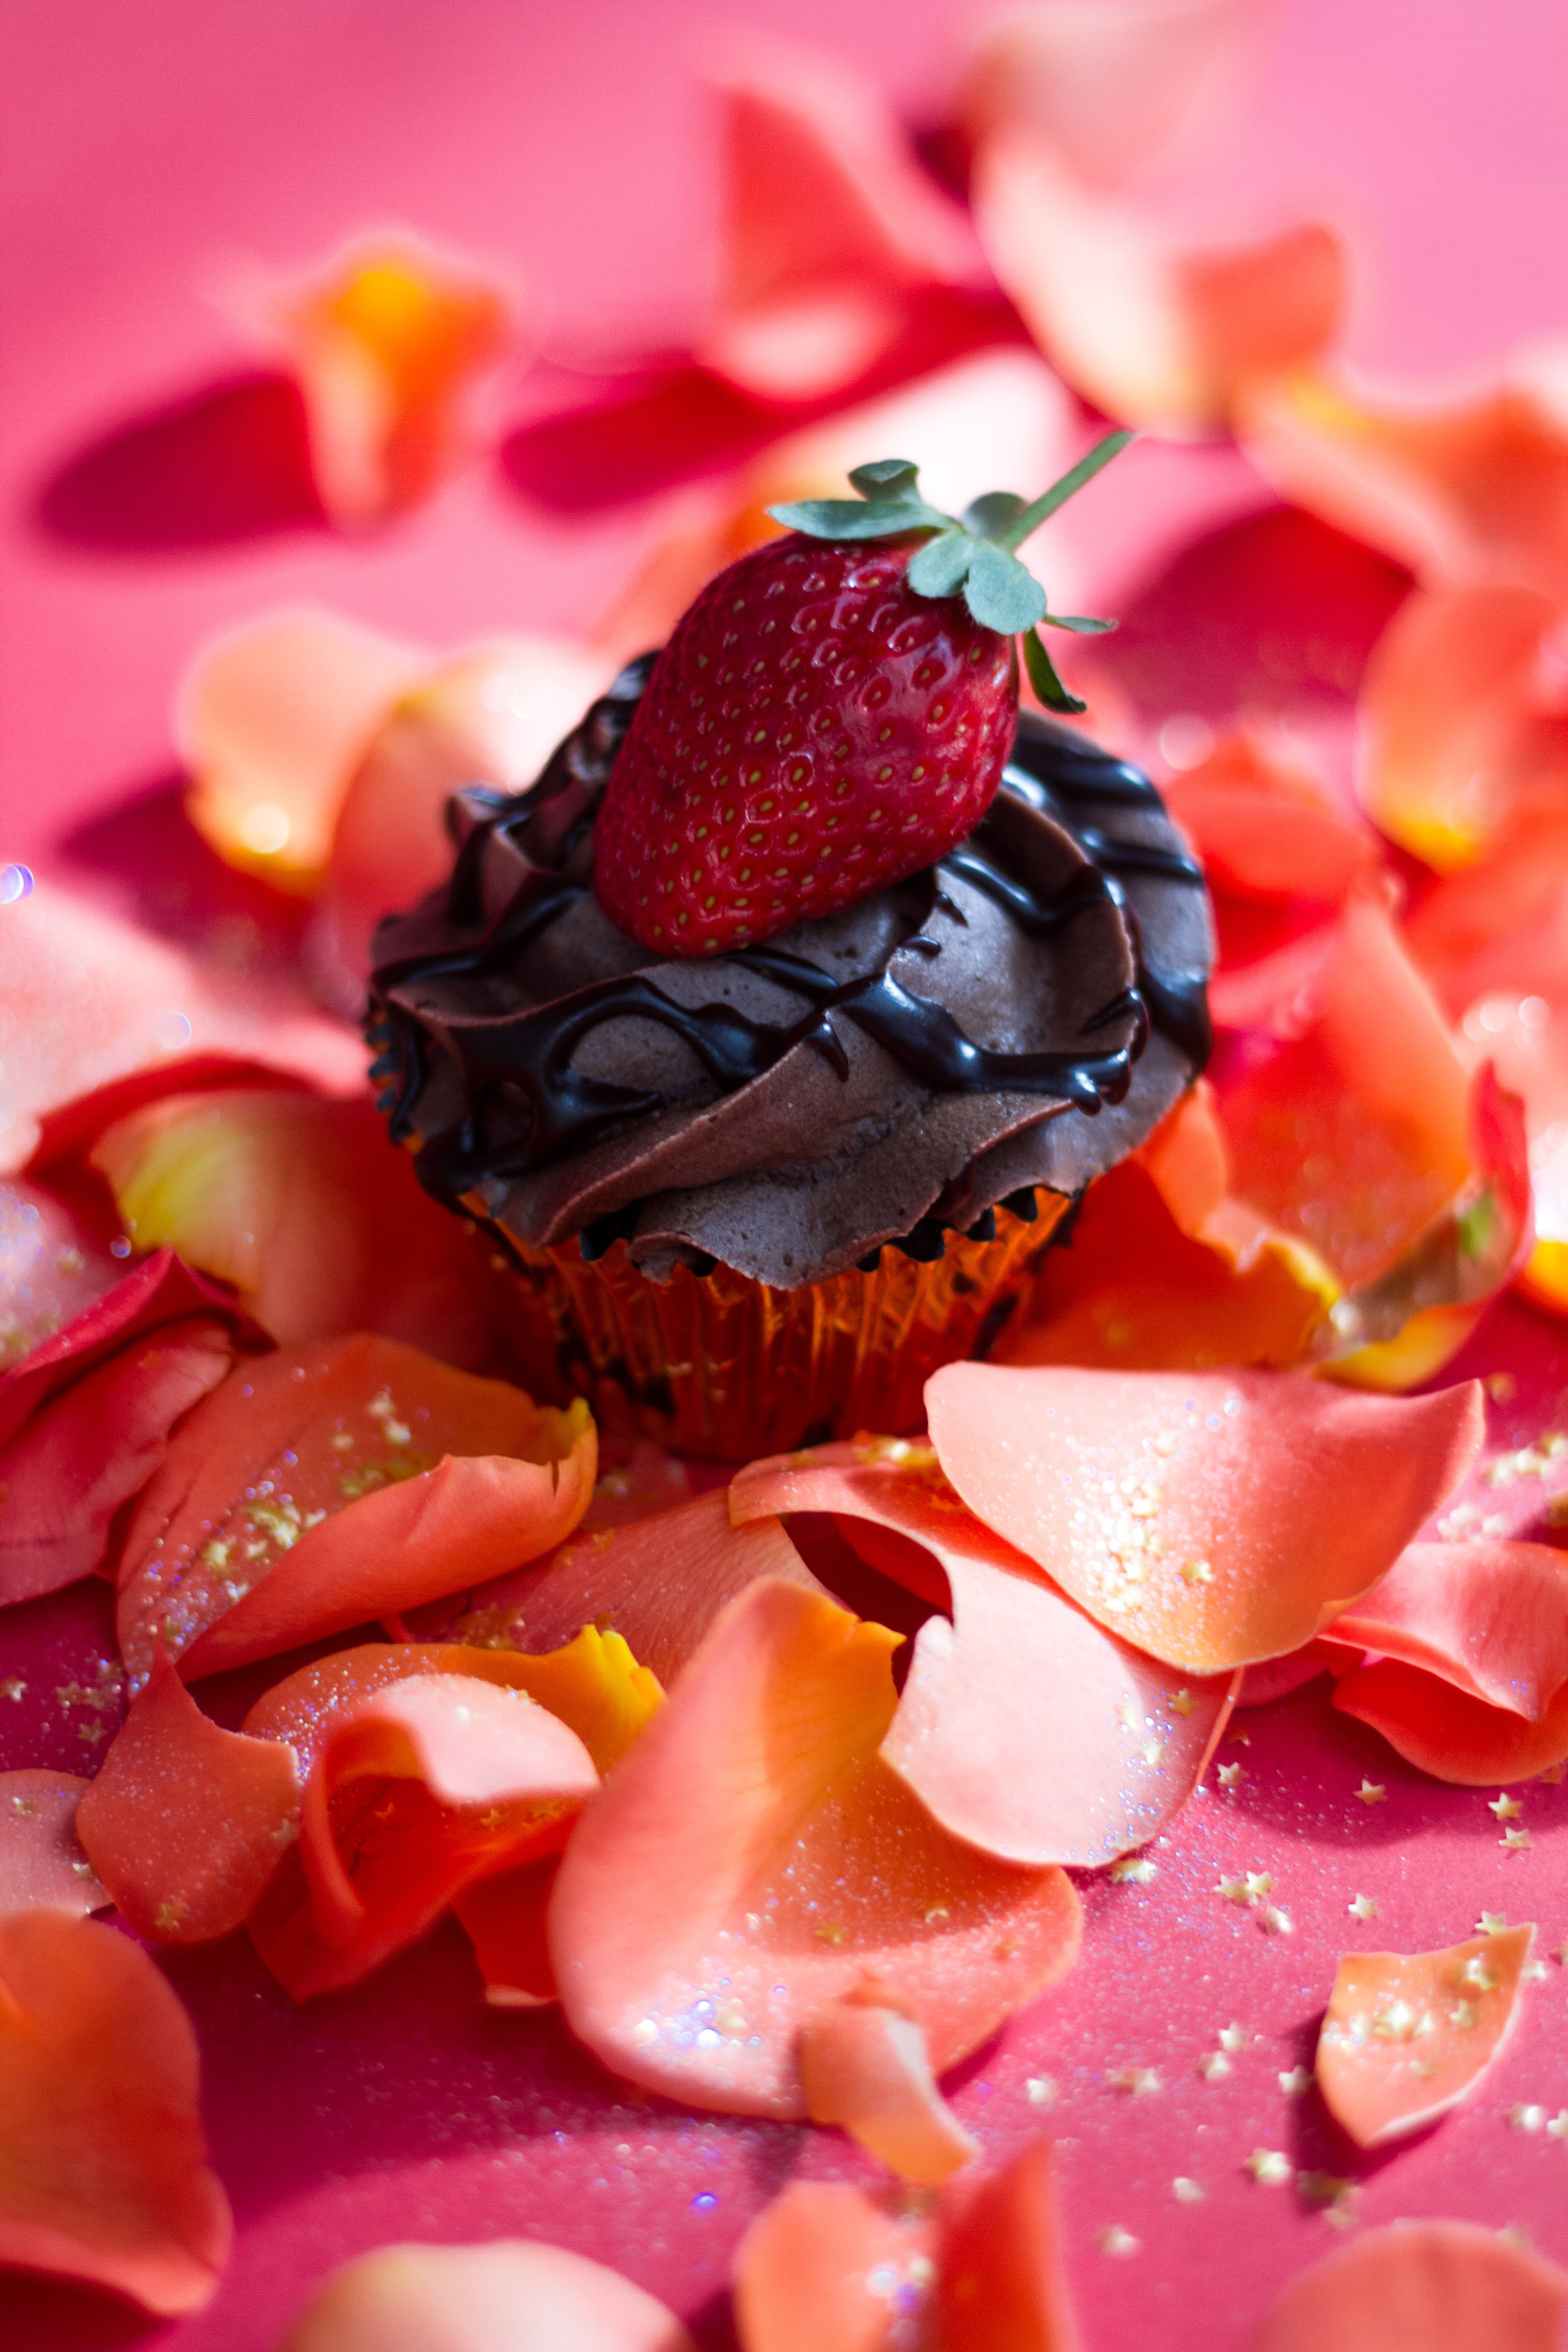 Chocolate cupcake with strawberry